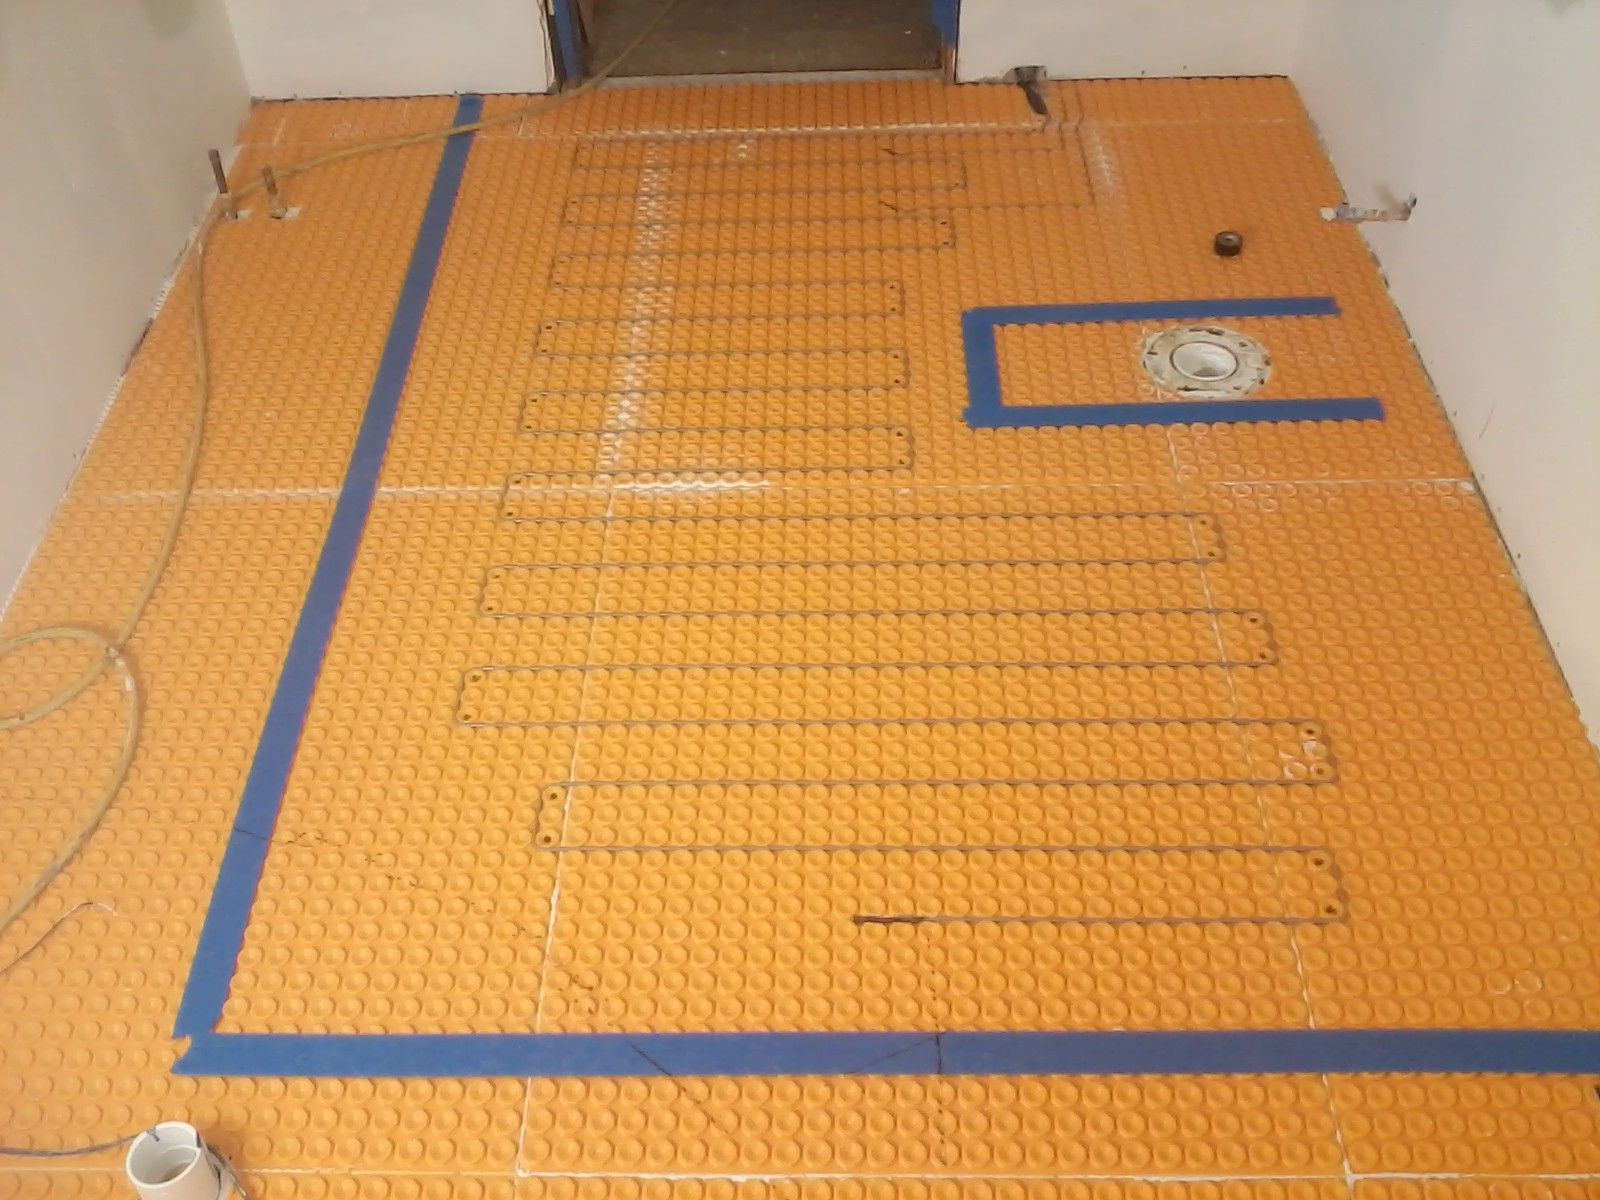 Installed A Schluter Ditra Heat Floor System In This Latest Bathroom Remodel Www Sub Latest Small Bathroom Designs Bathrooms Remodel Mobile Home Renovations